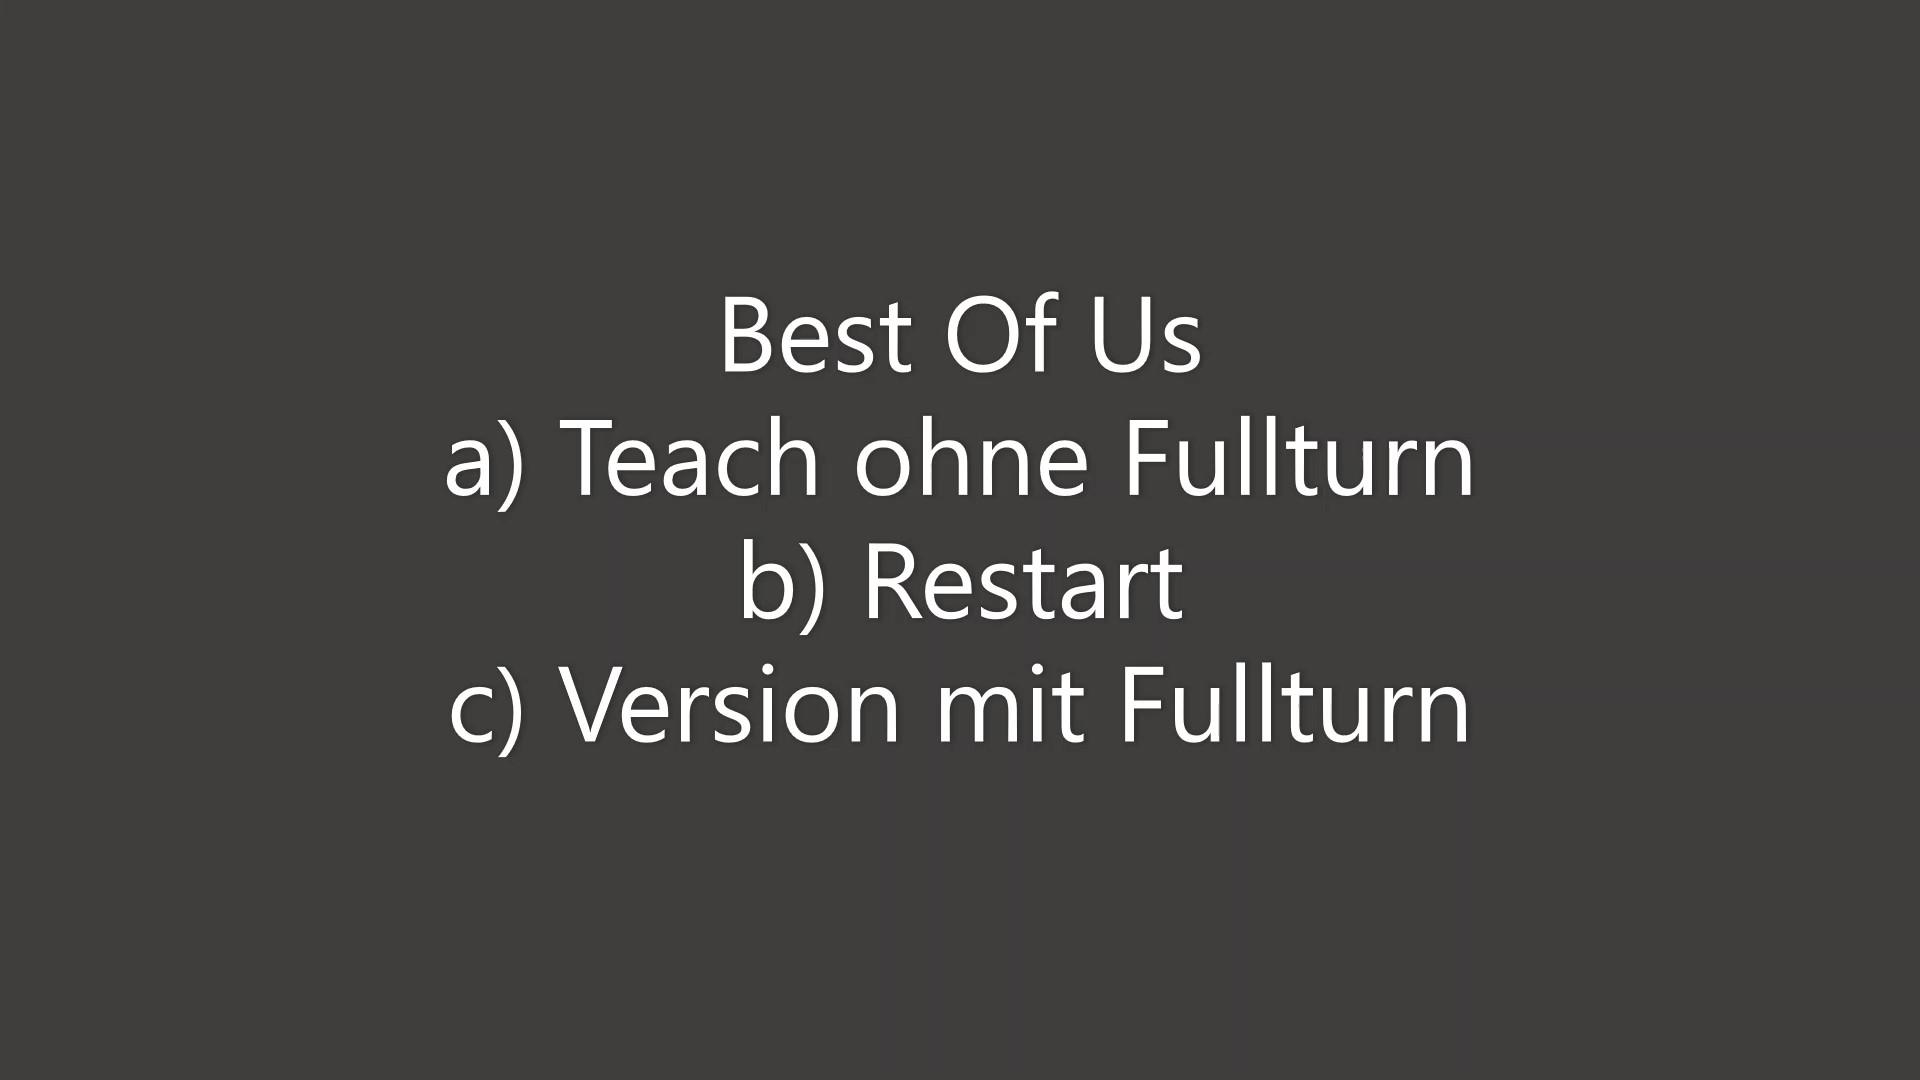 Best Of Us Teach